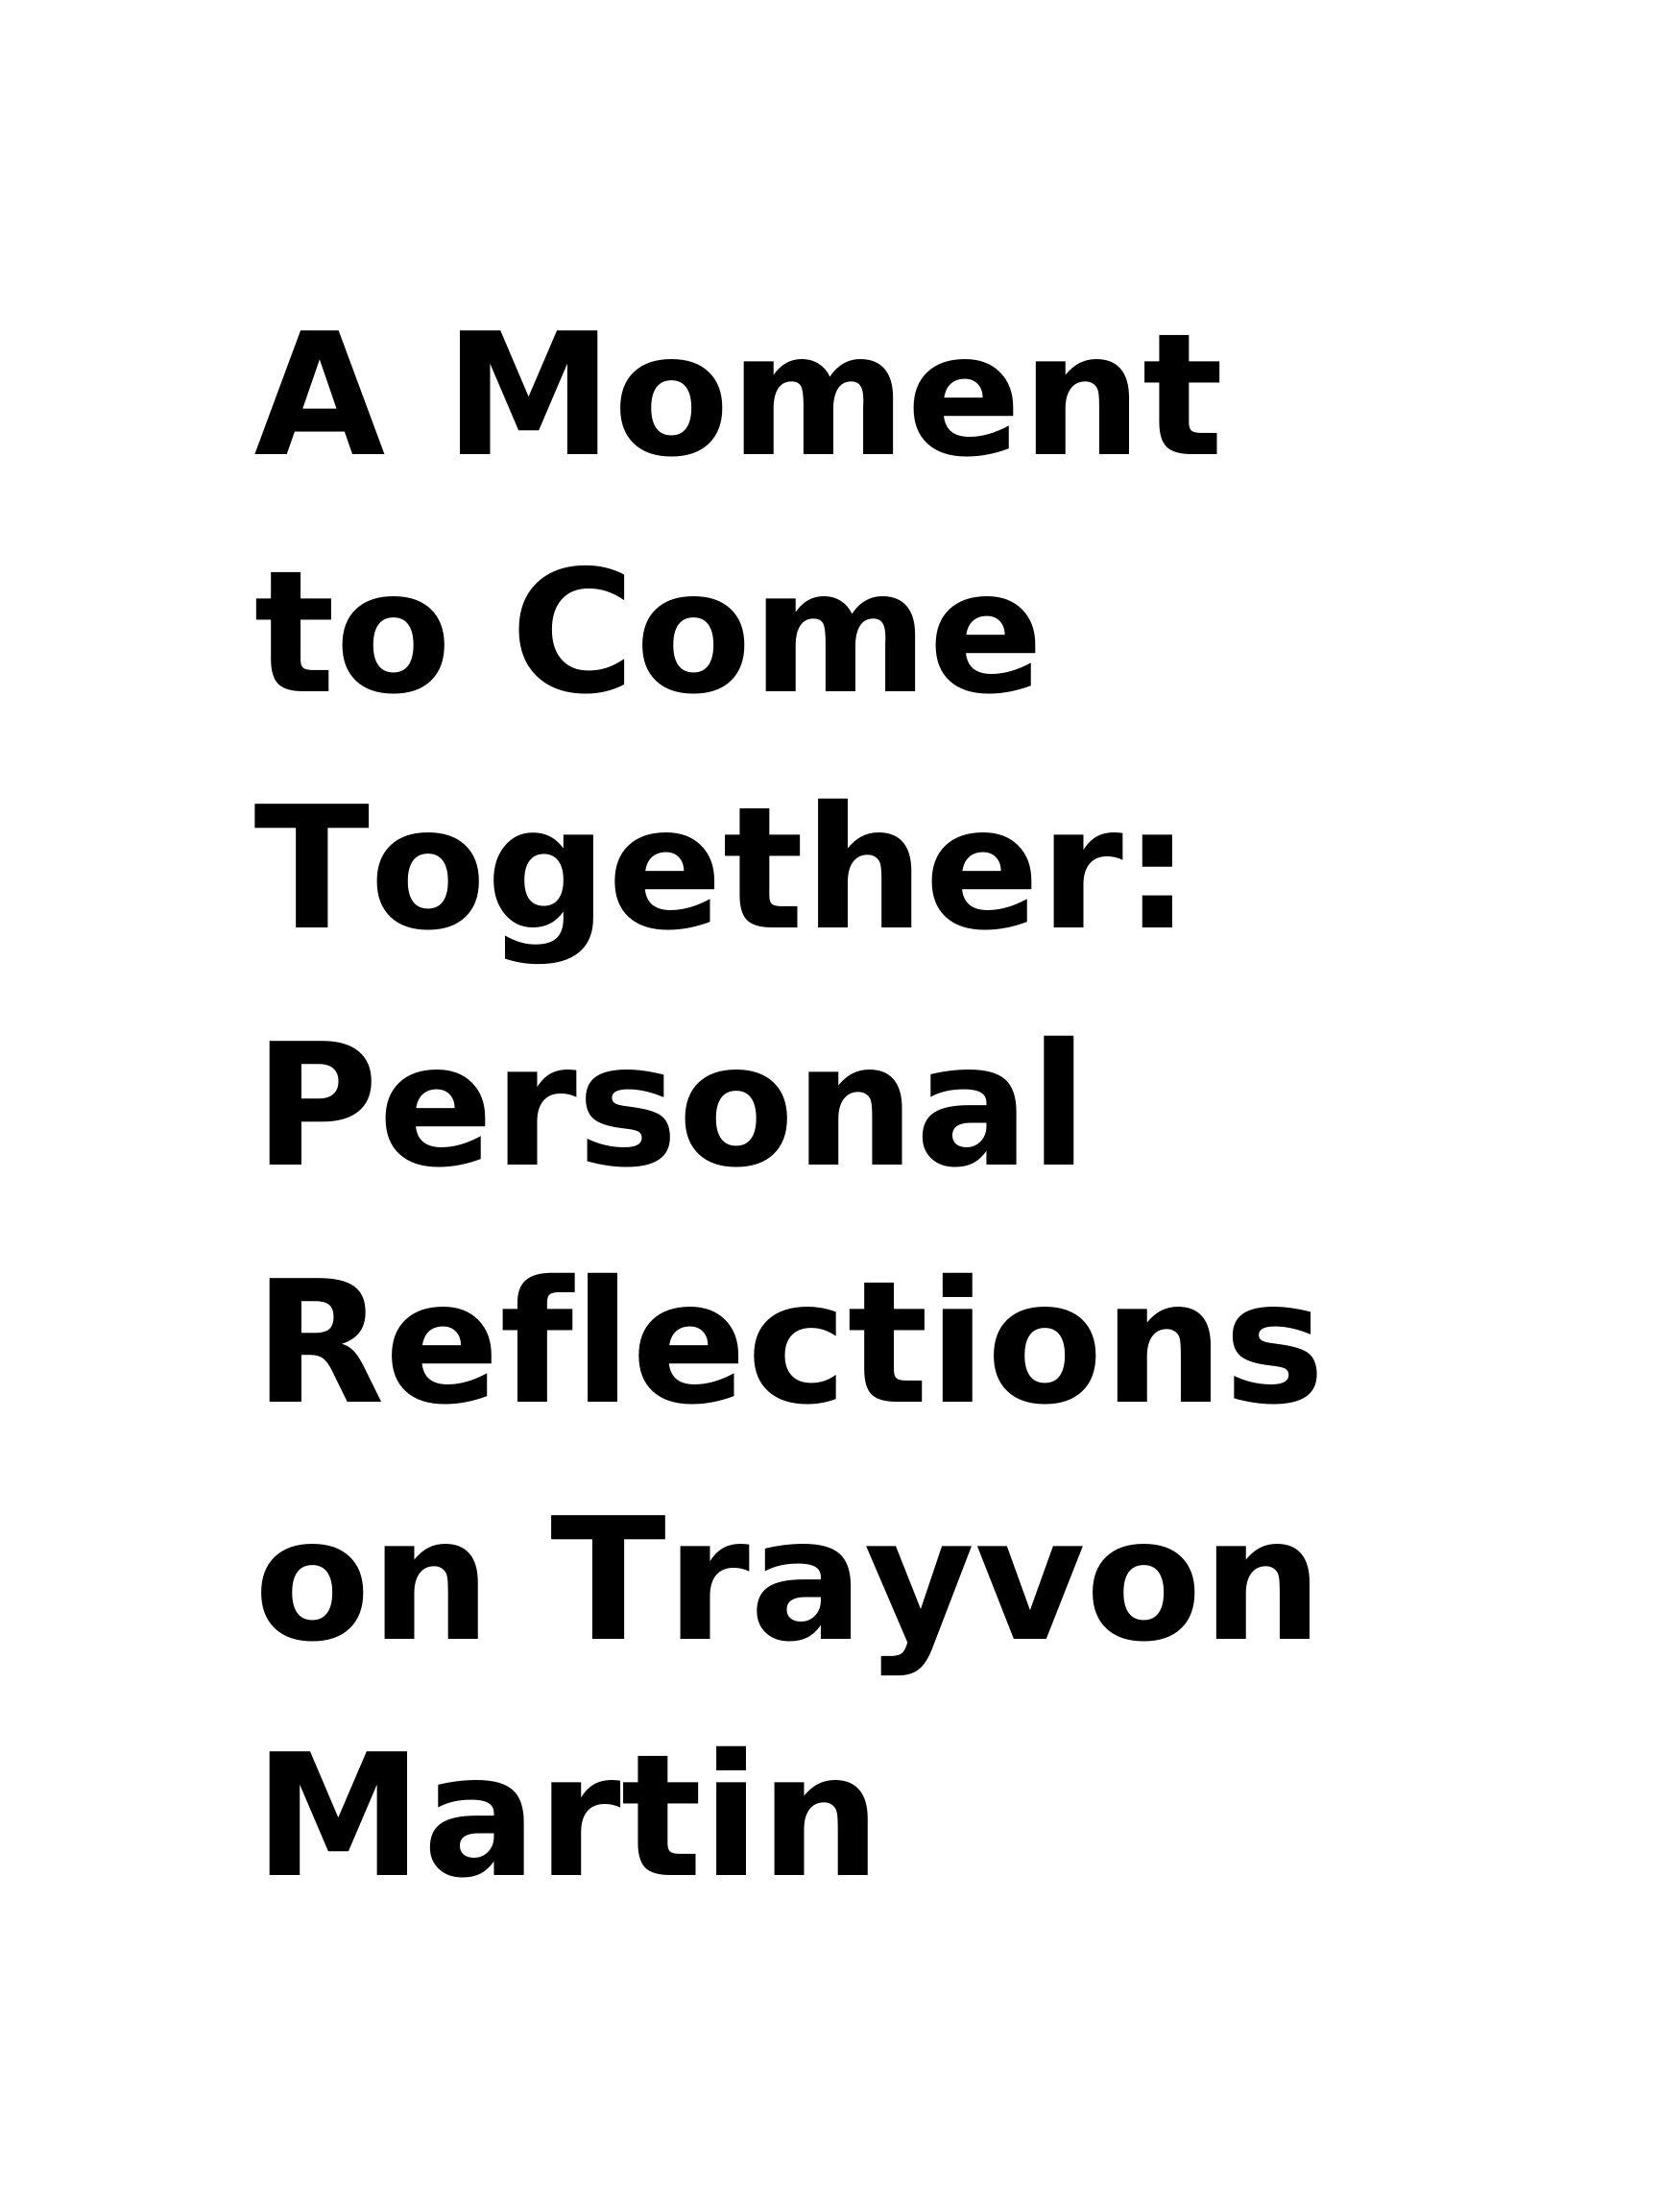 A Moment to Come Together_ Personal Reflections on Trayvon Martin